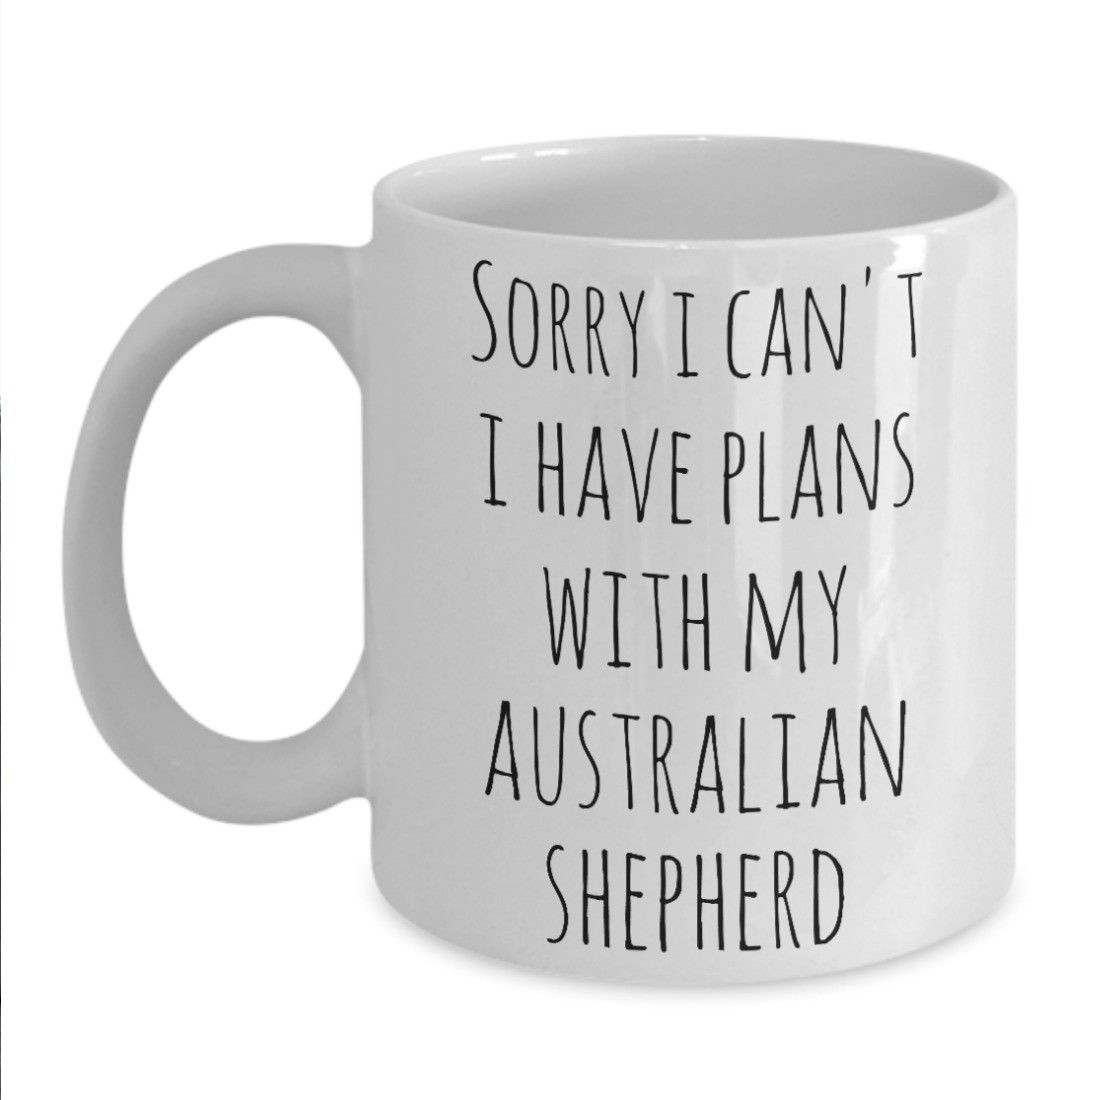 Primary image for Australian Shepherd Mug Aussie Mom I Have Plans With My Australian Shepherd Cup